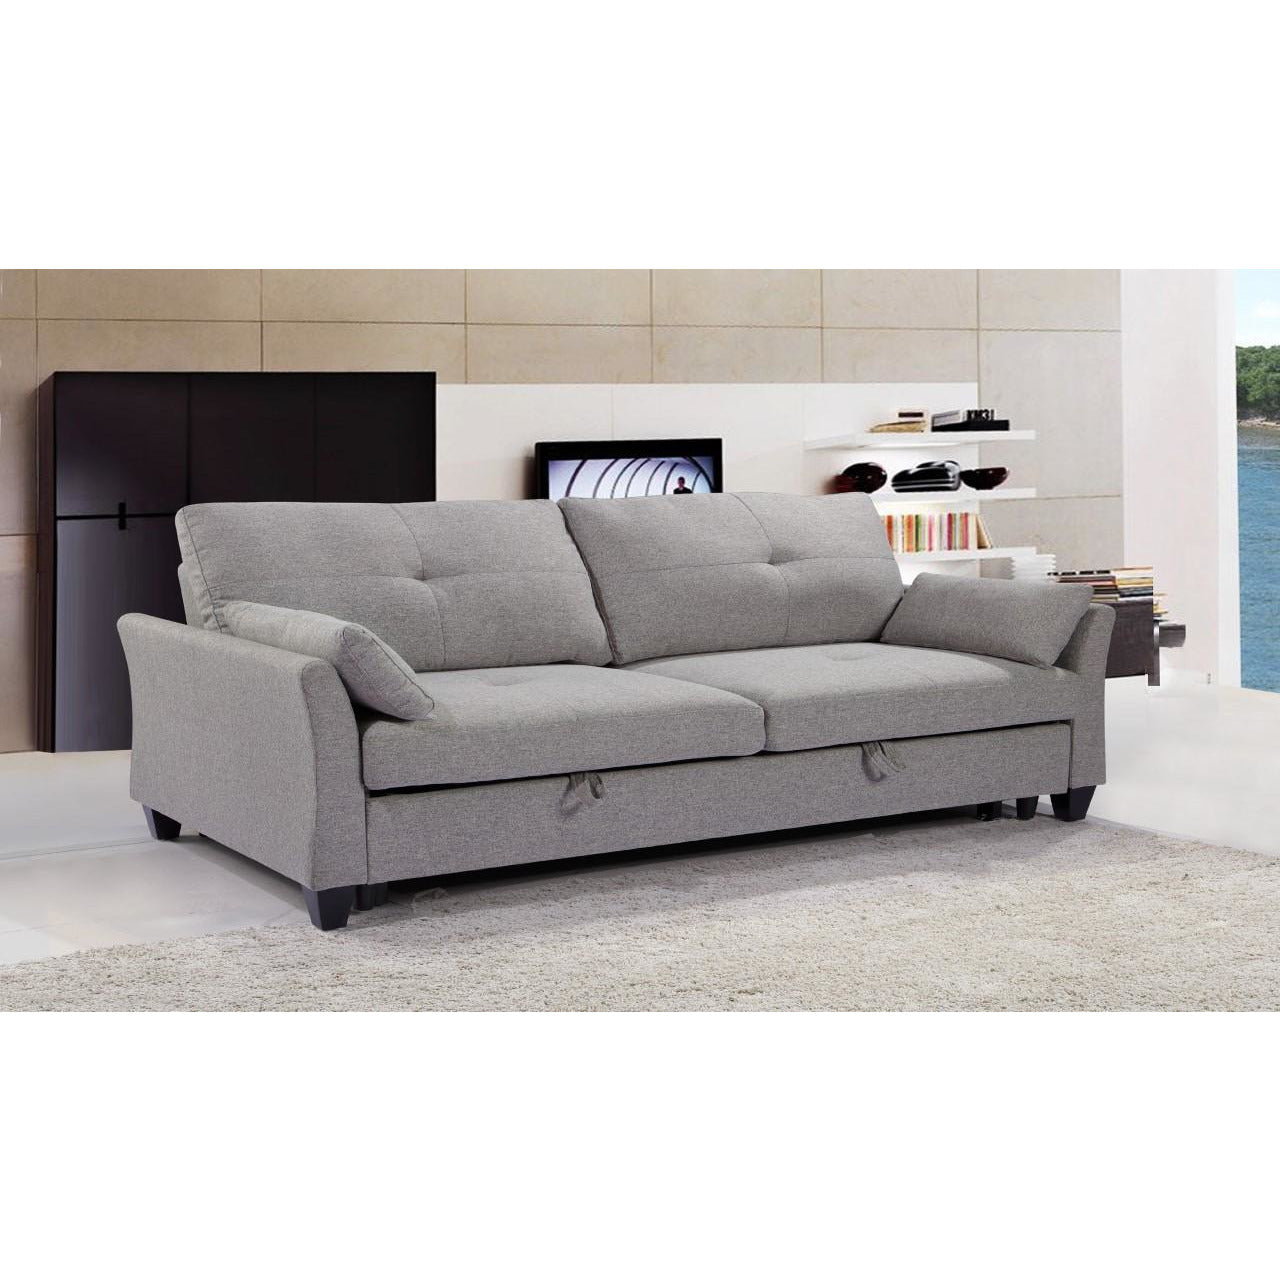 SOFA CAMA - DAMIANO COLLECTION